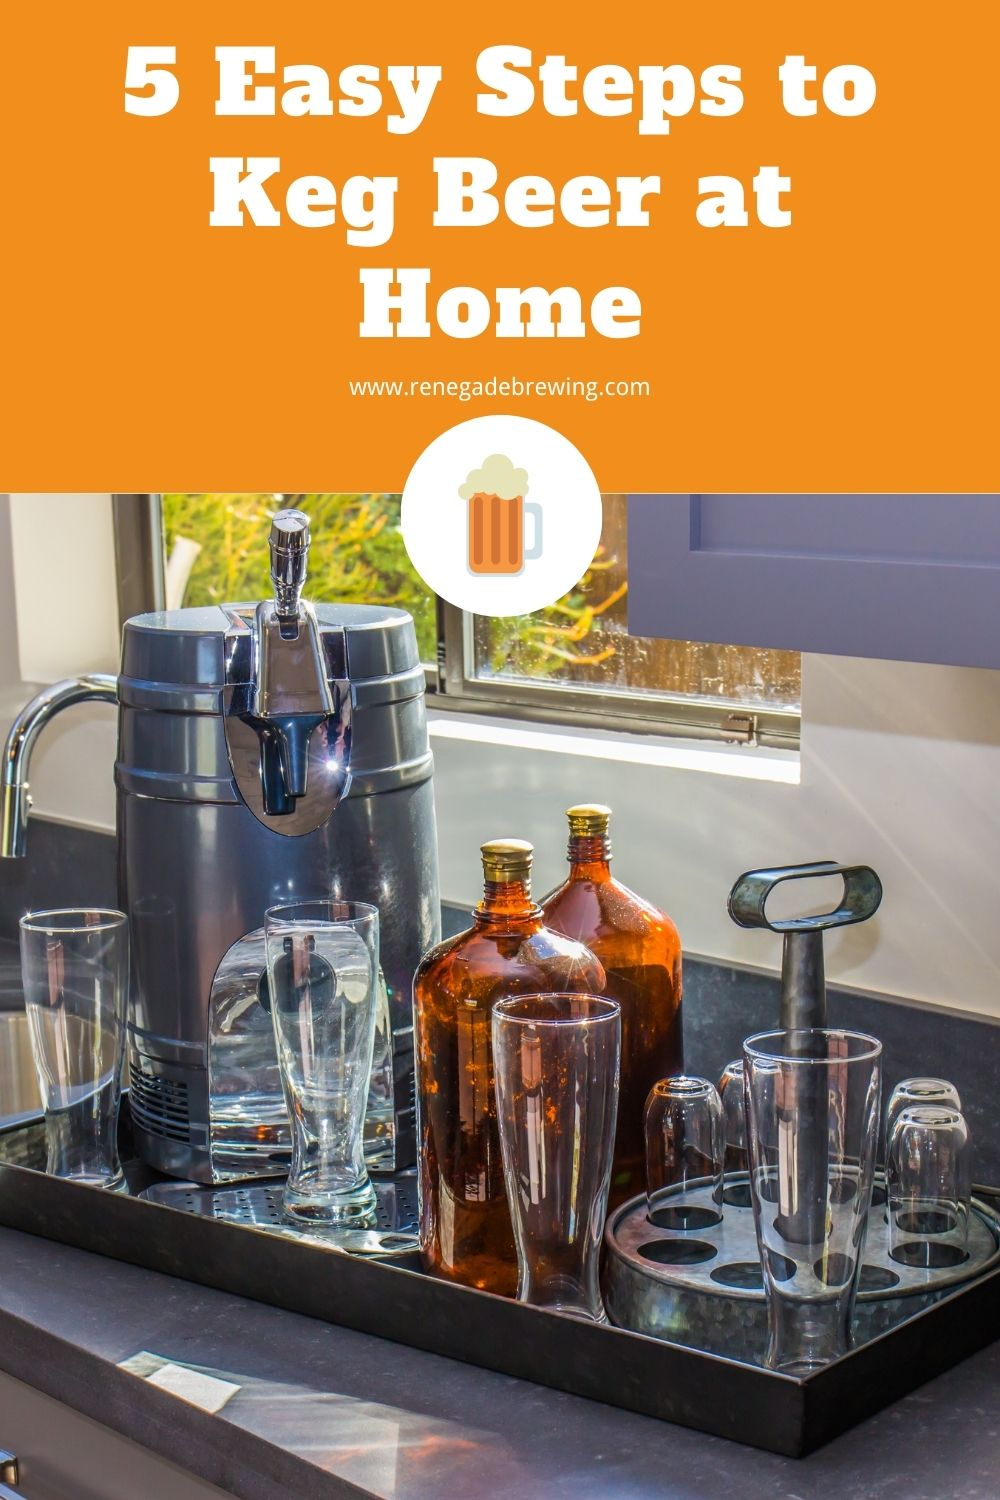 5 Easy Steps to Keg Beer at Home 1